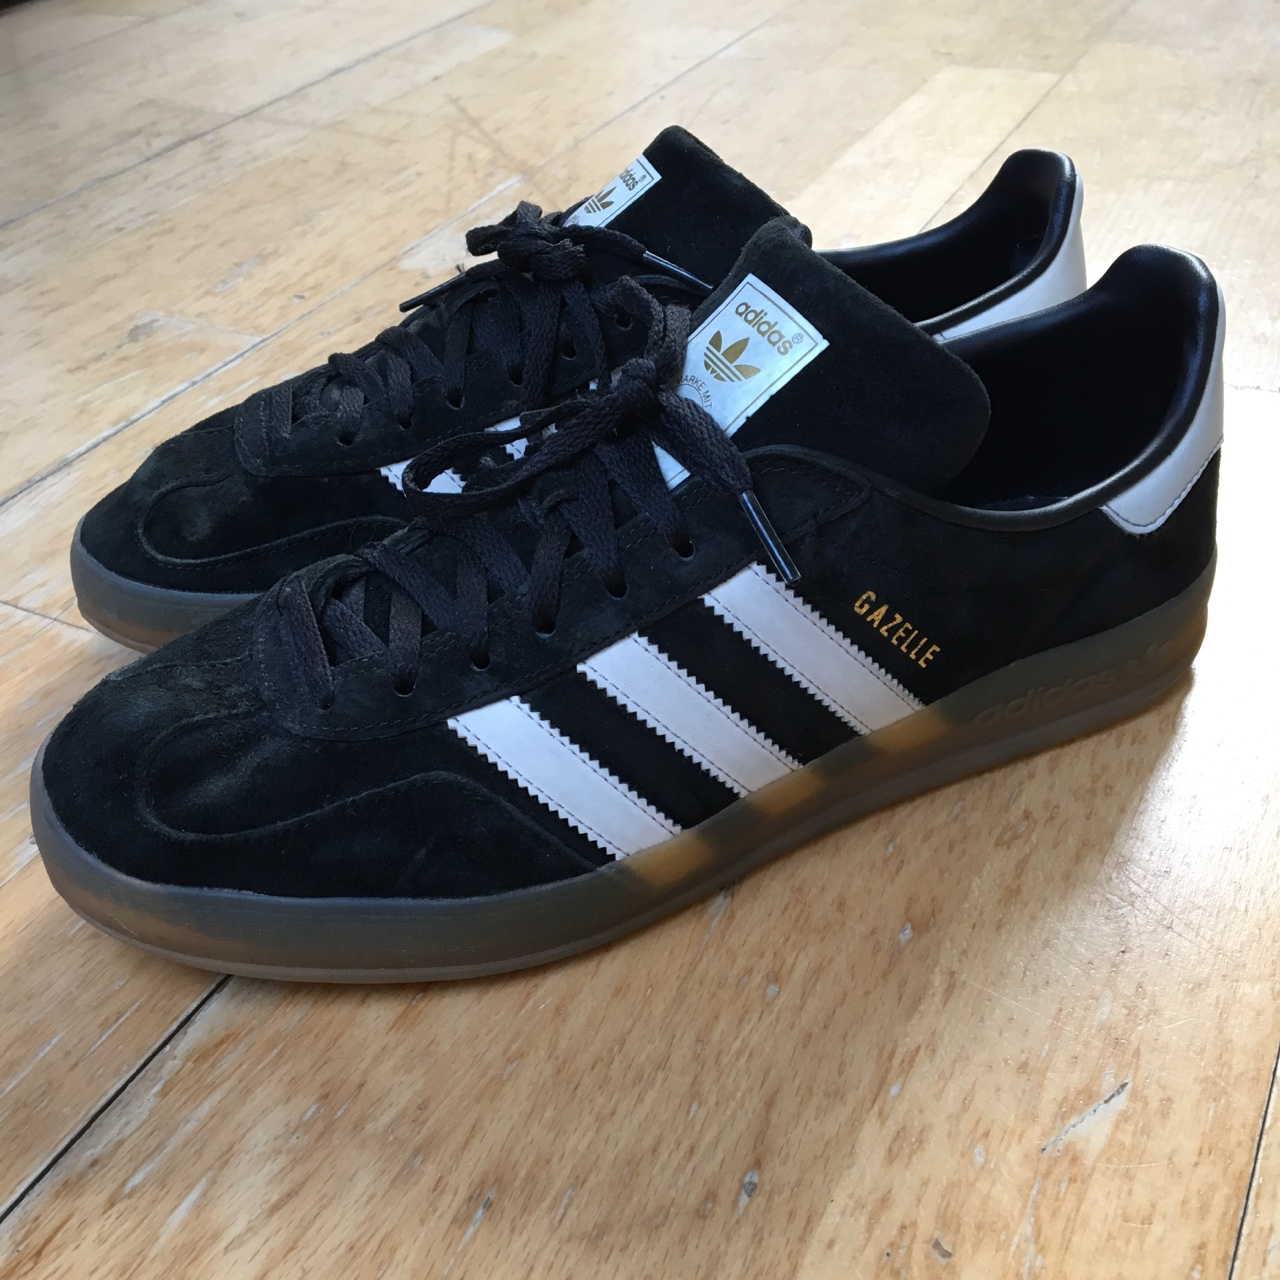 Adidas Gazelle black suede with gum sole. Perfect...